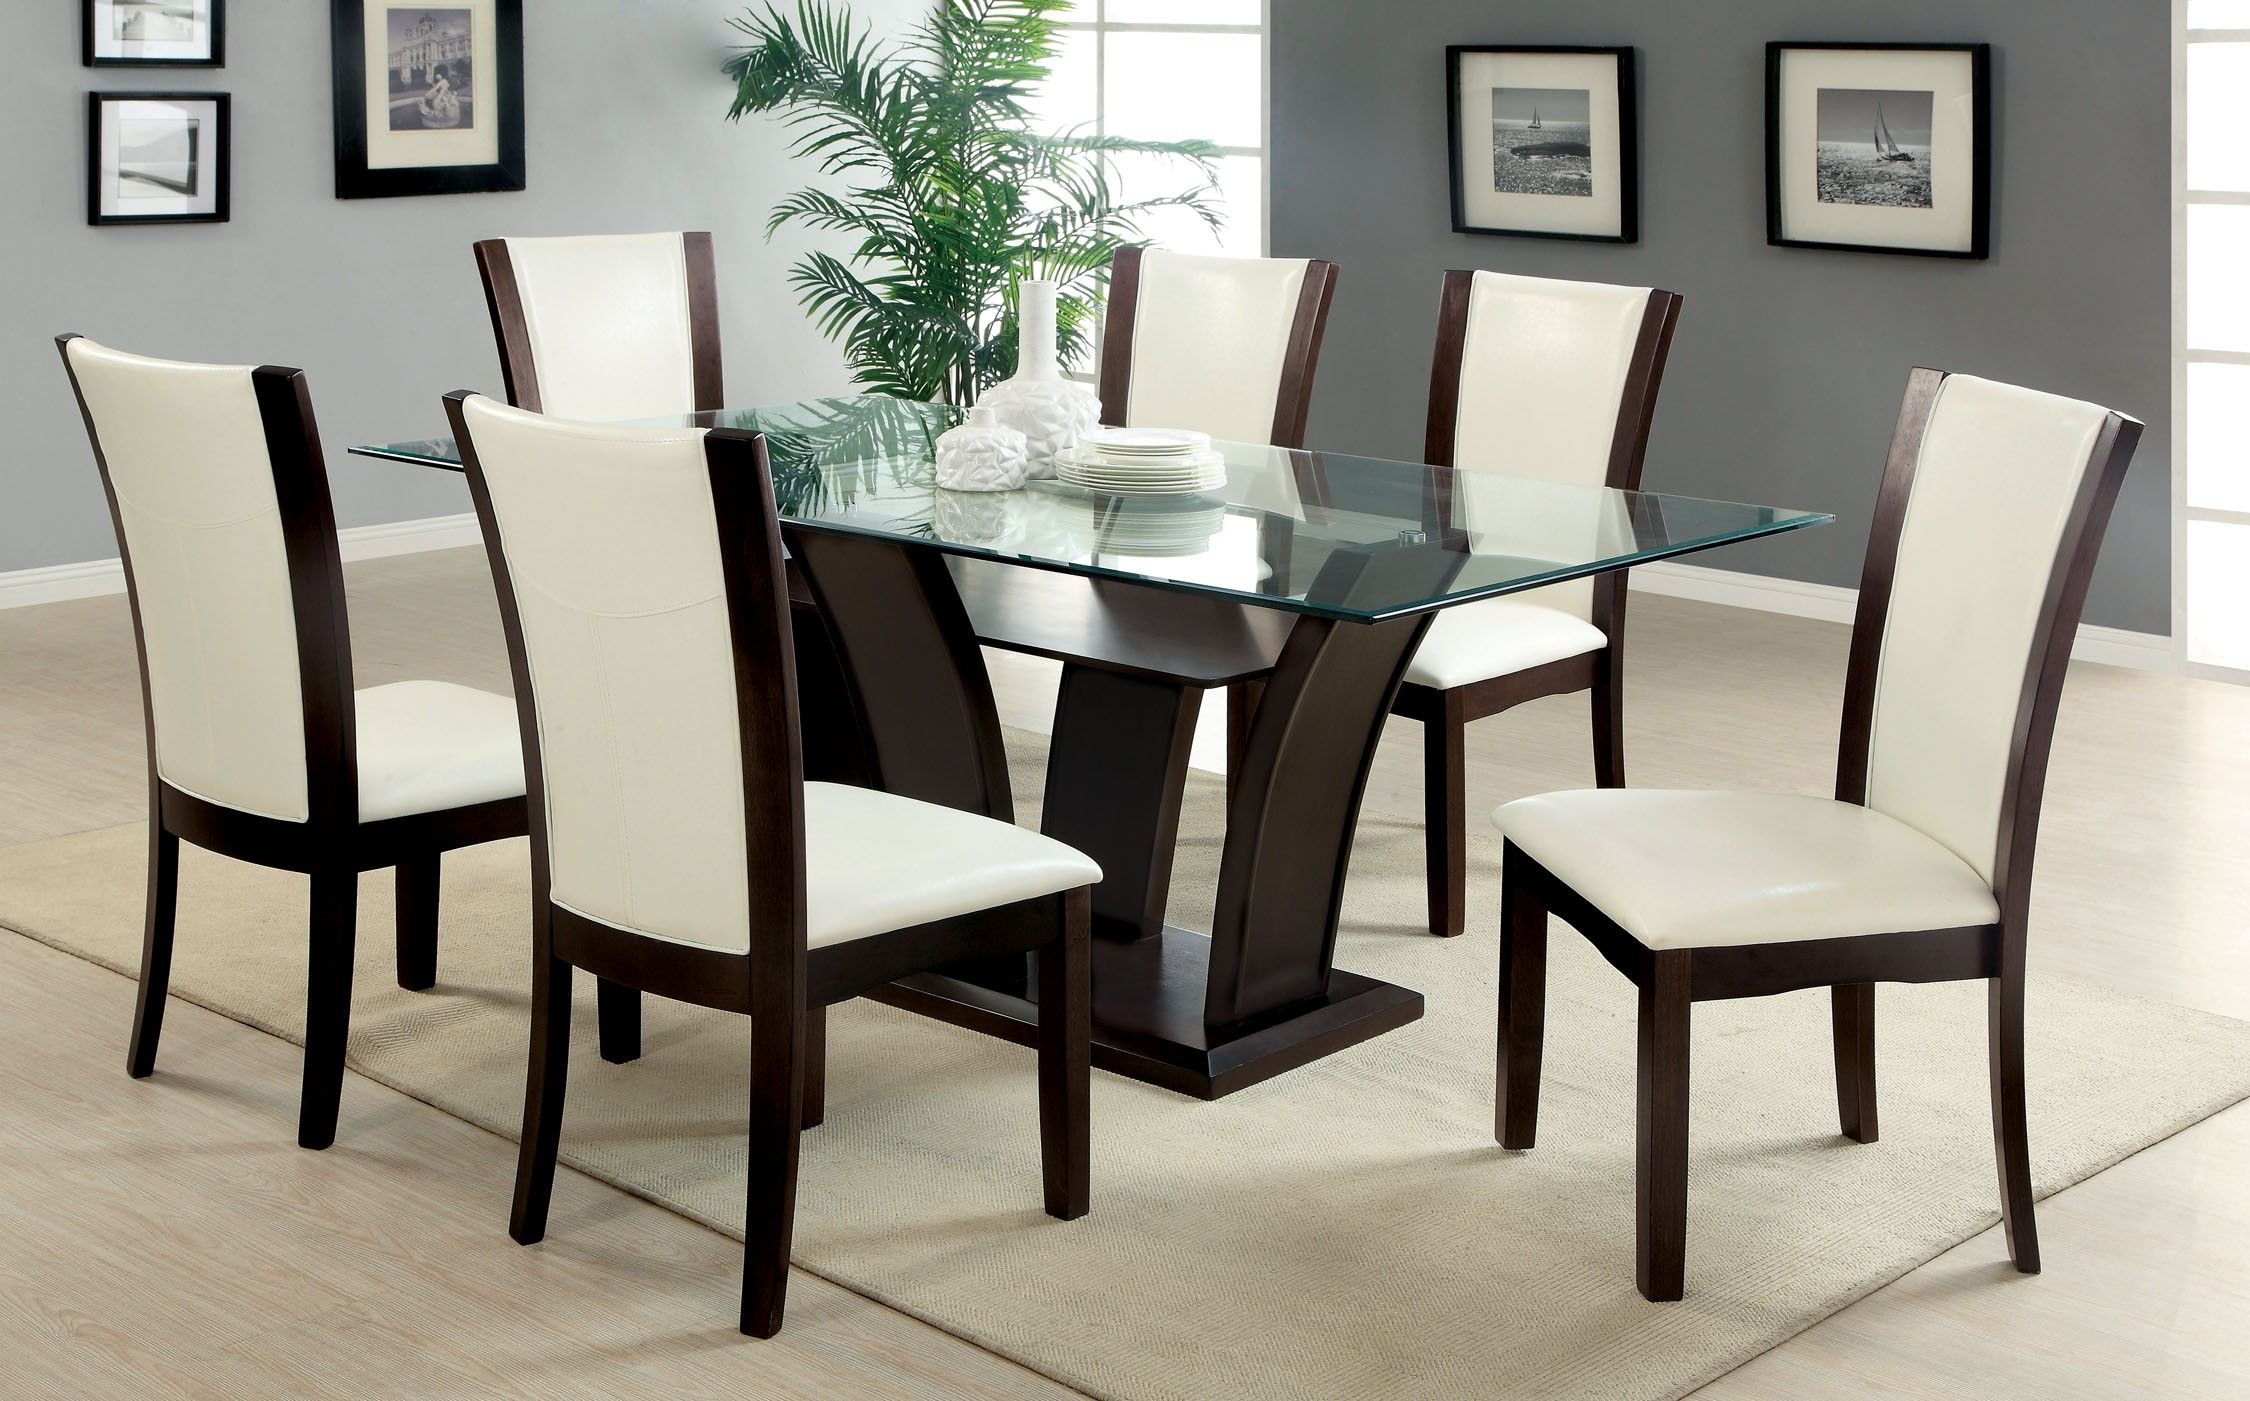 Glass Dining Table Set 6 Chairs Glass Dining Room Table